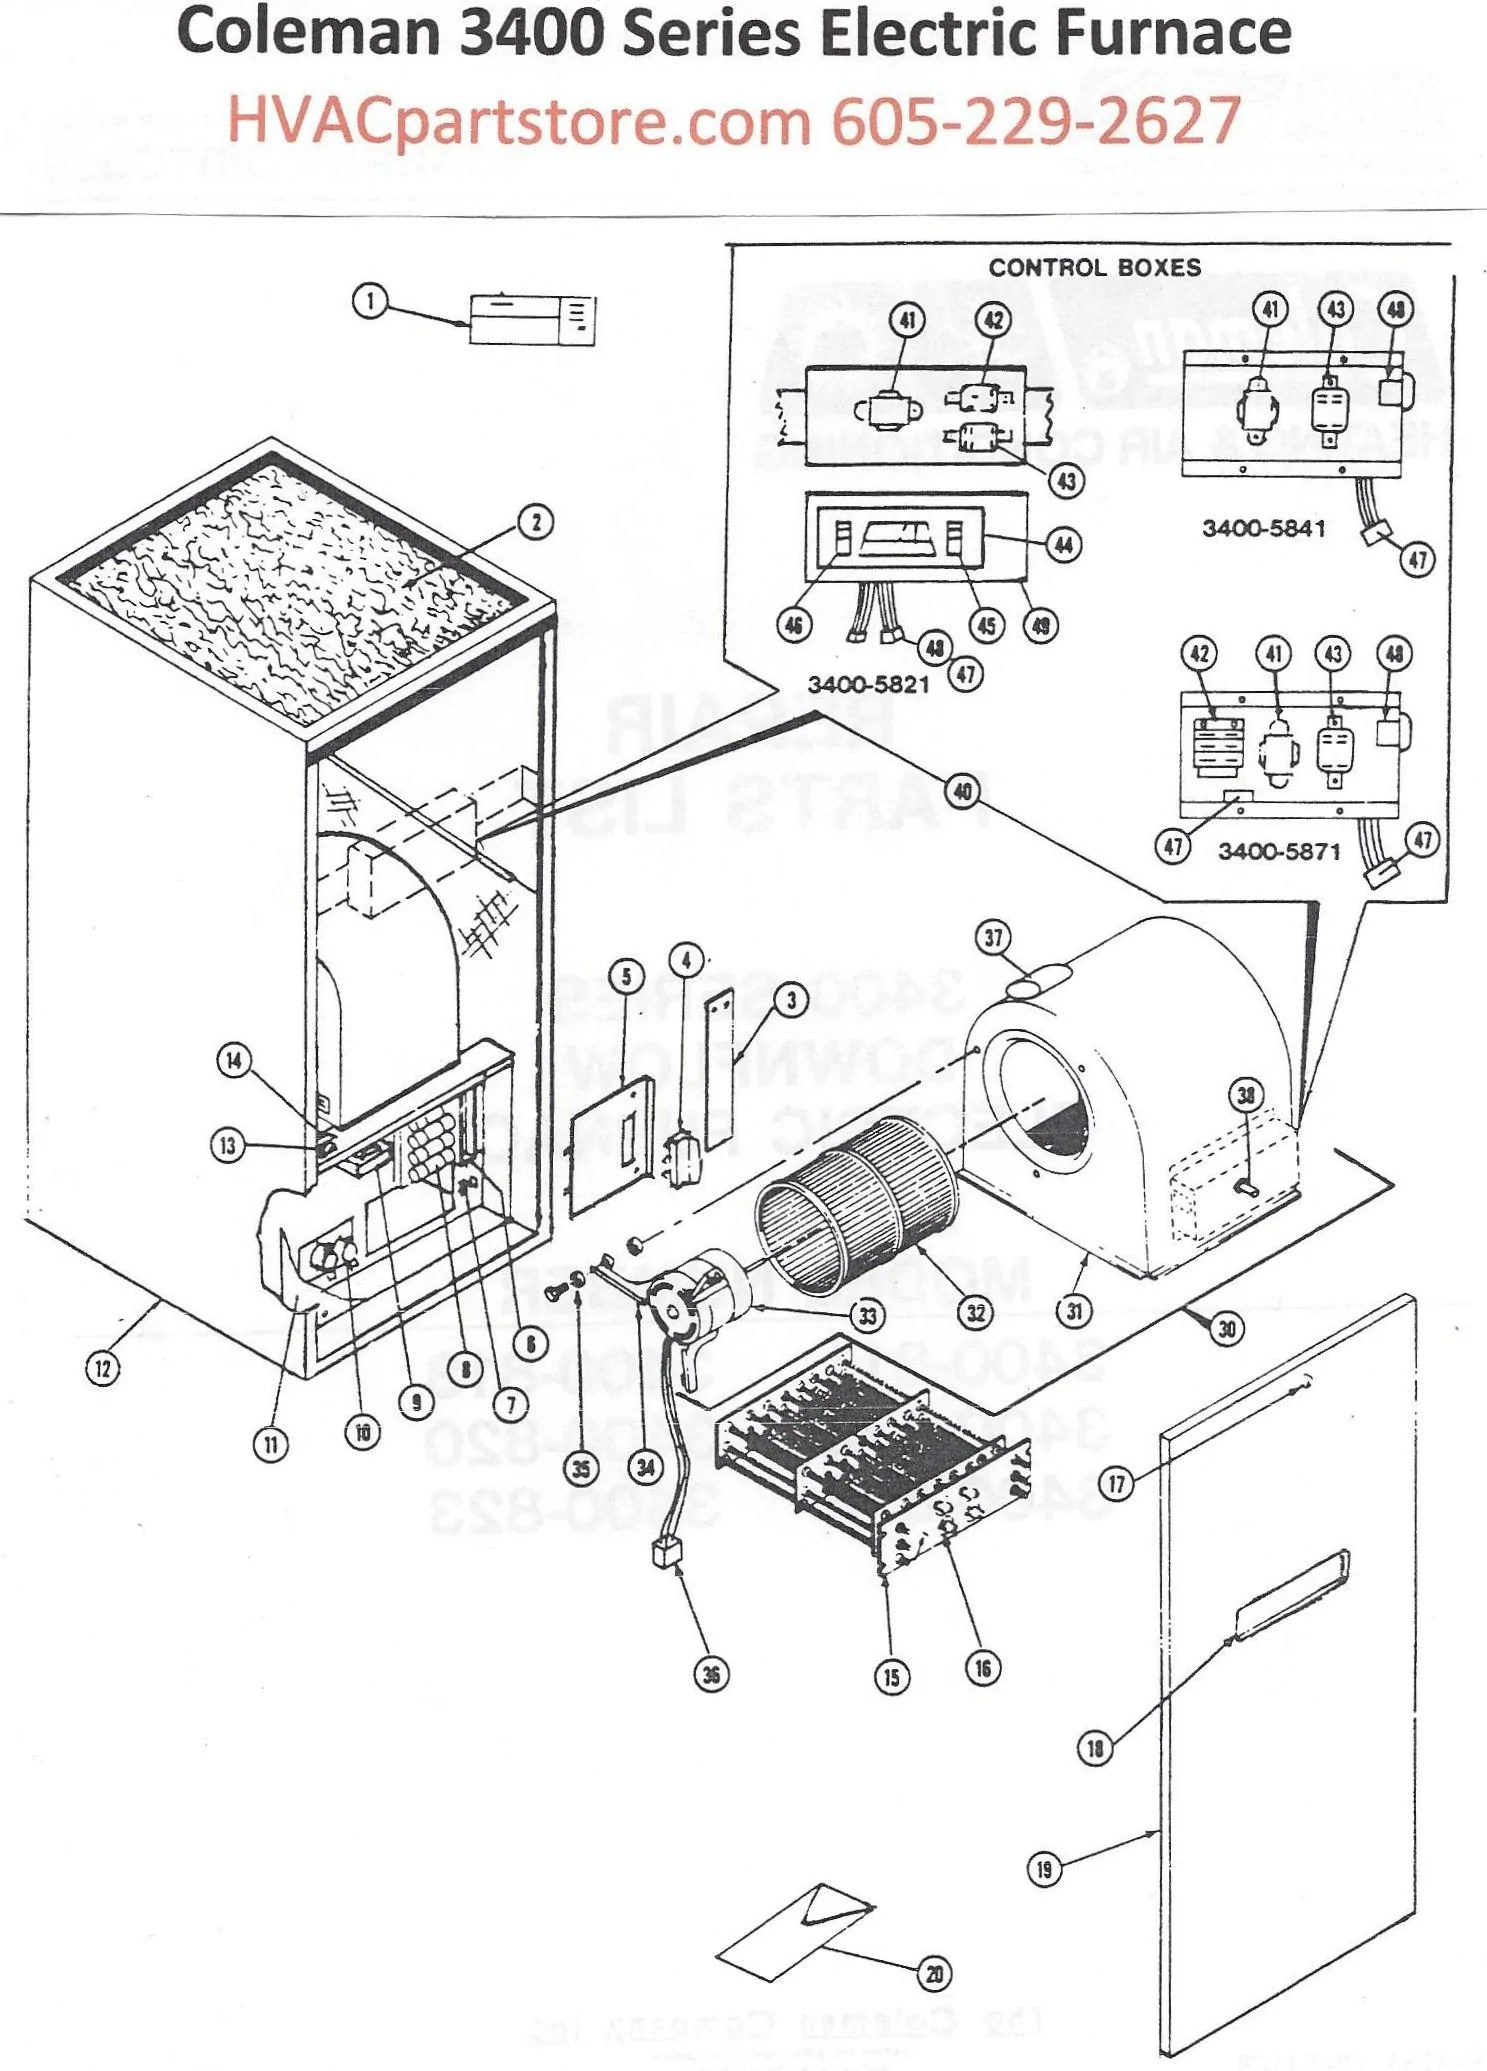 medium resolution of coleman ac heater wiring diagram 3400 wiring diagram third level3400 815 coleman electric furnace parts hvacpartstore